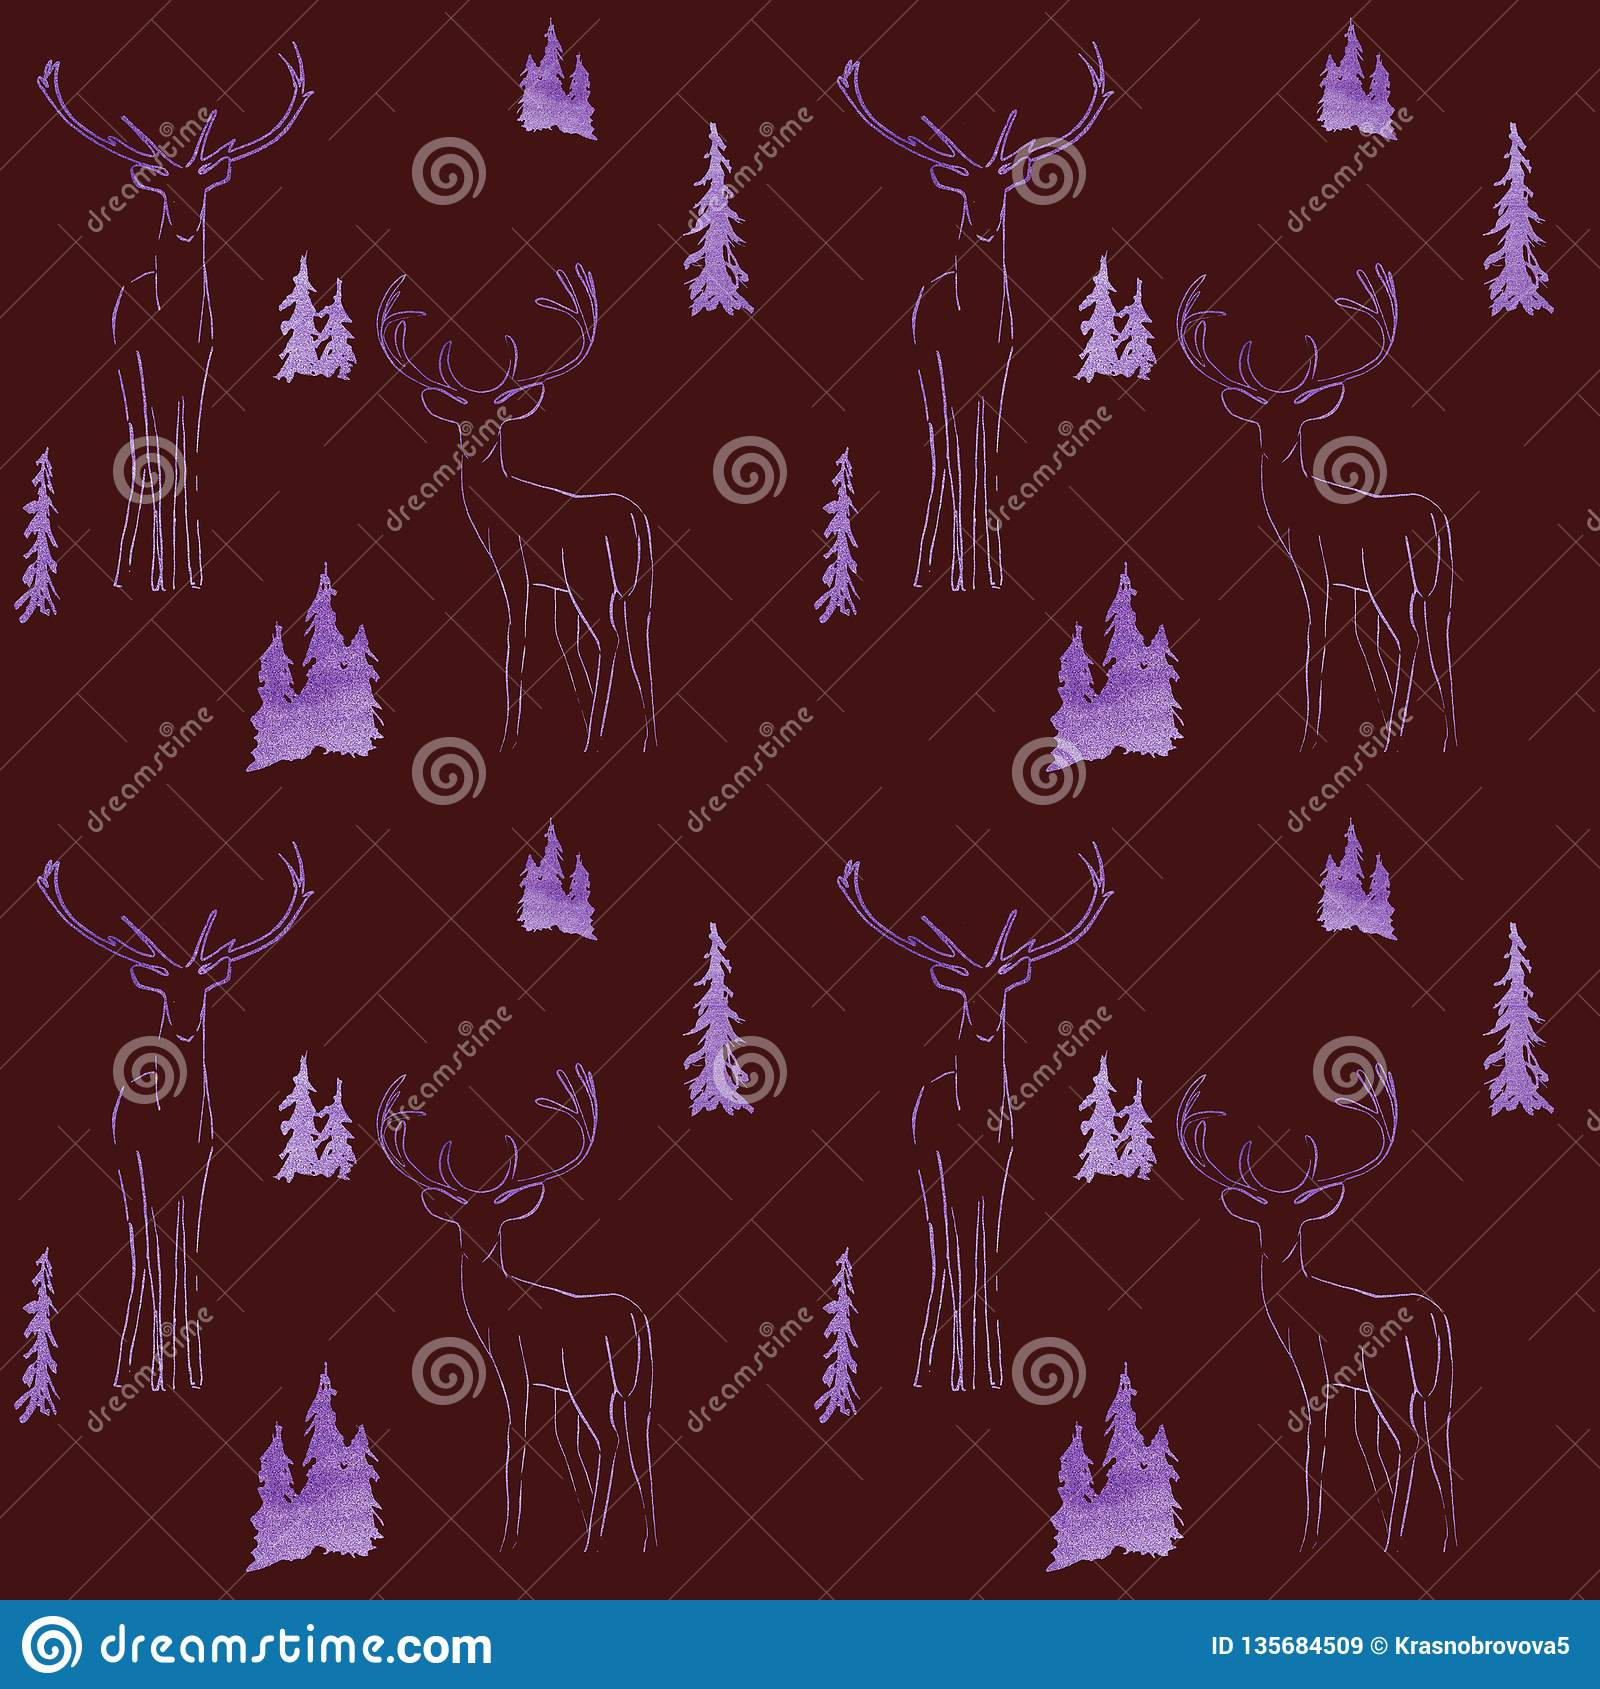 winter seamless pattern with glittering fir trees and deer in forest